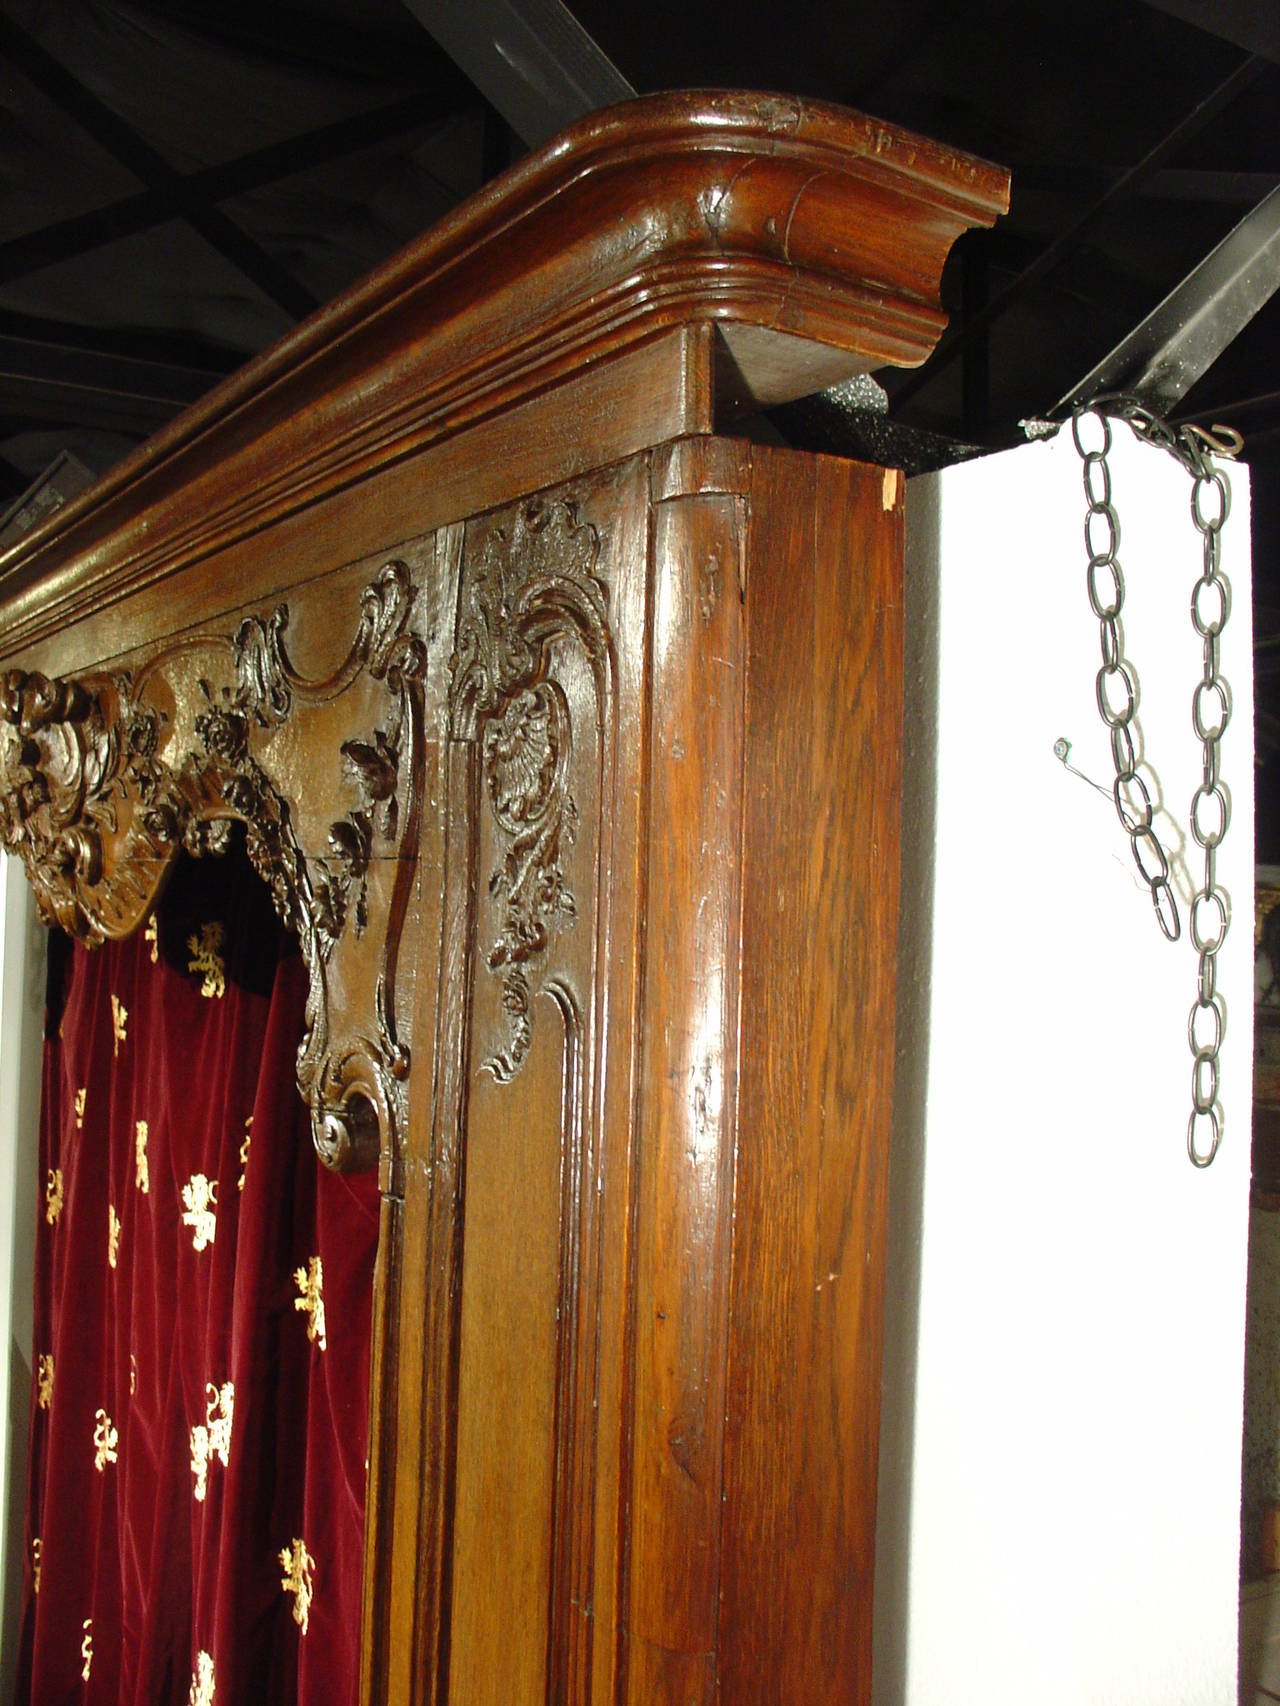 Carved Antique French Boiserie Door Surround from the 1700s For Sale